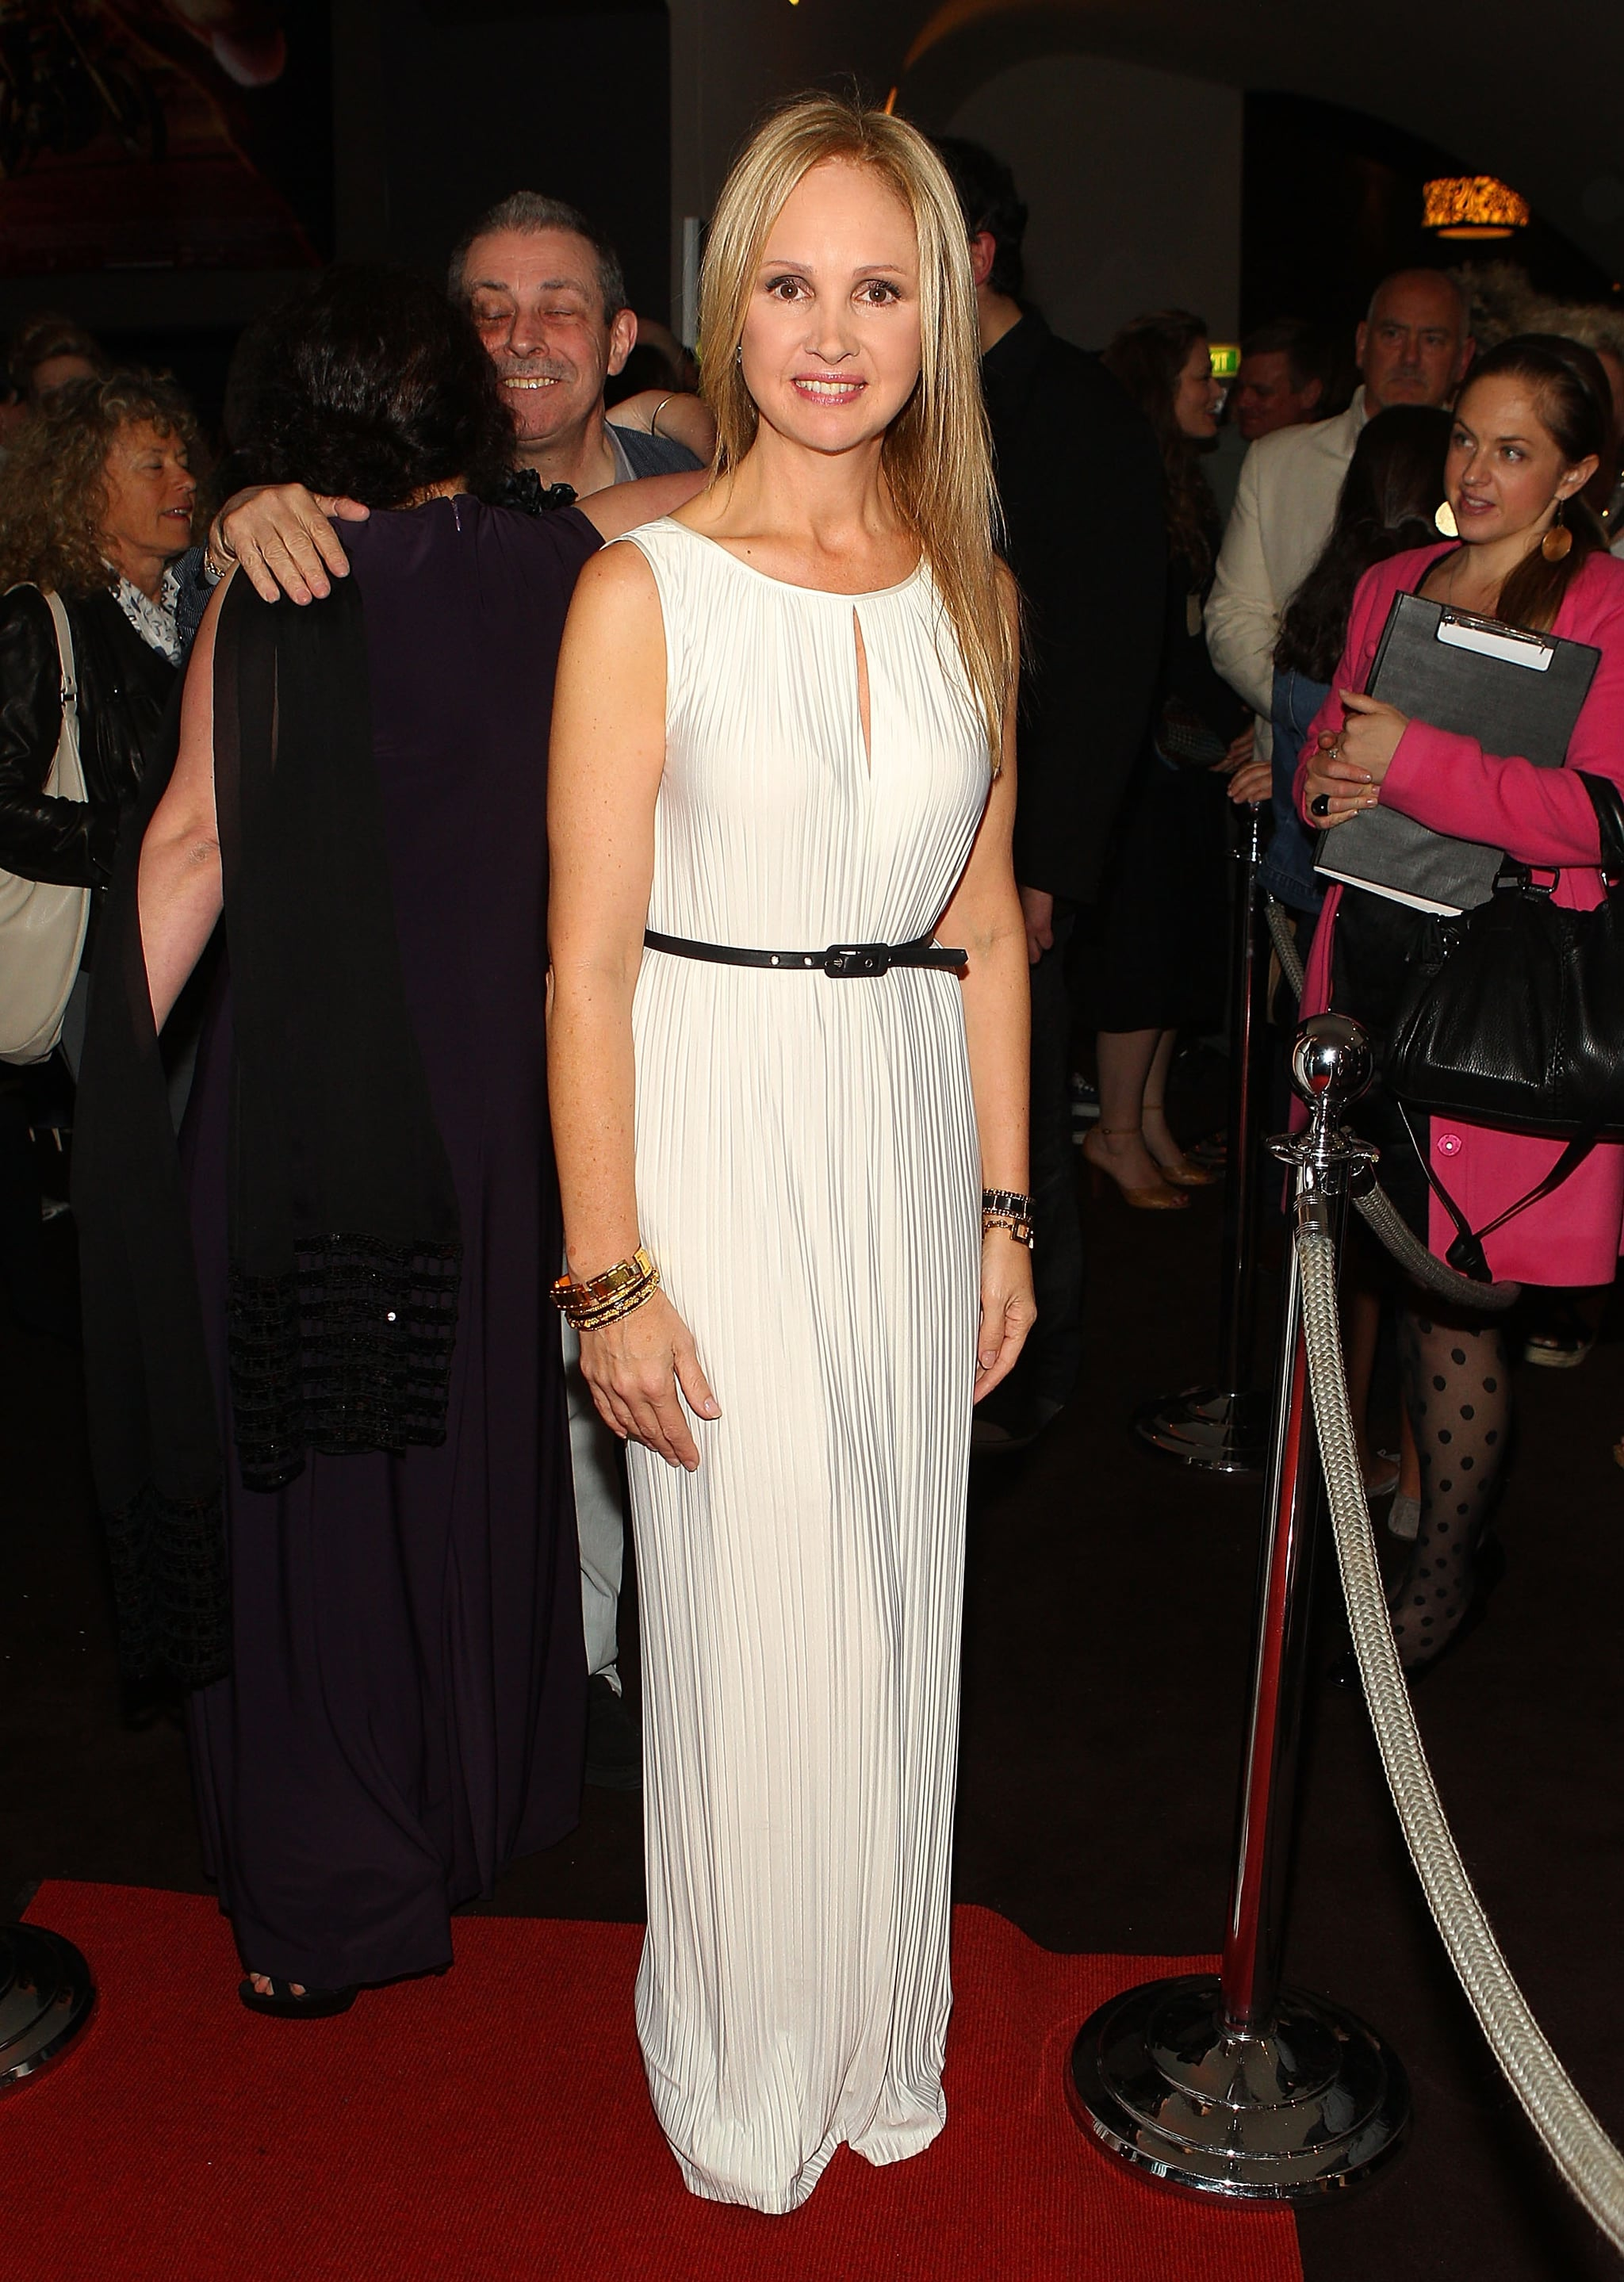 Director Kate Whitbread